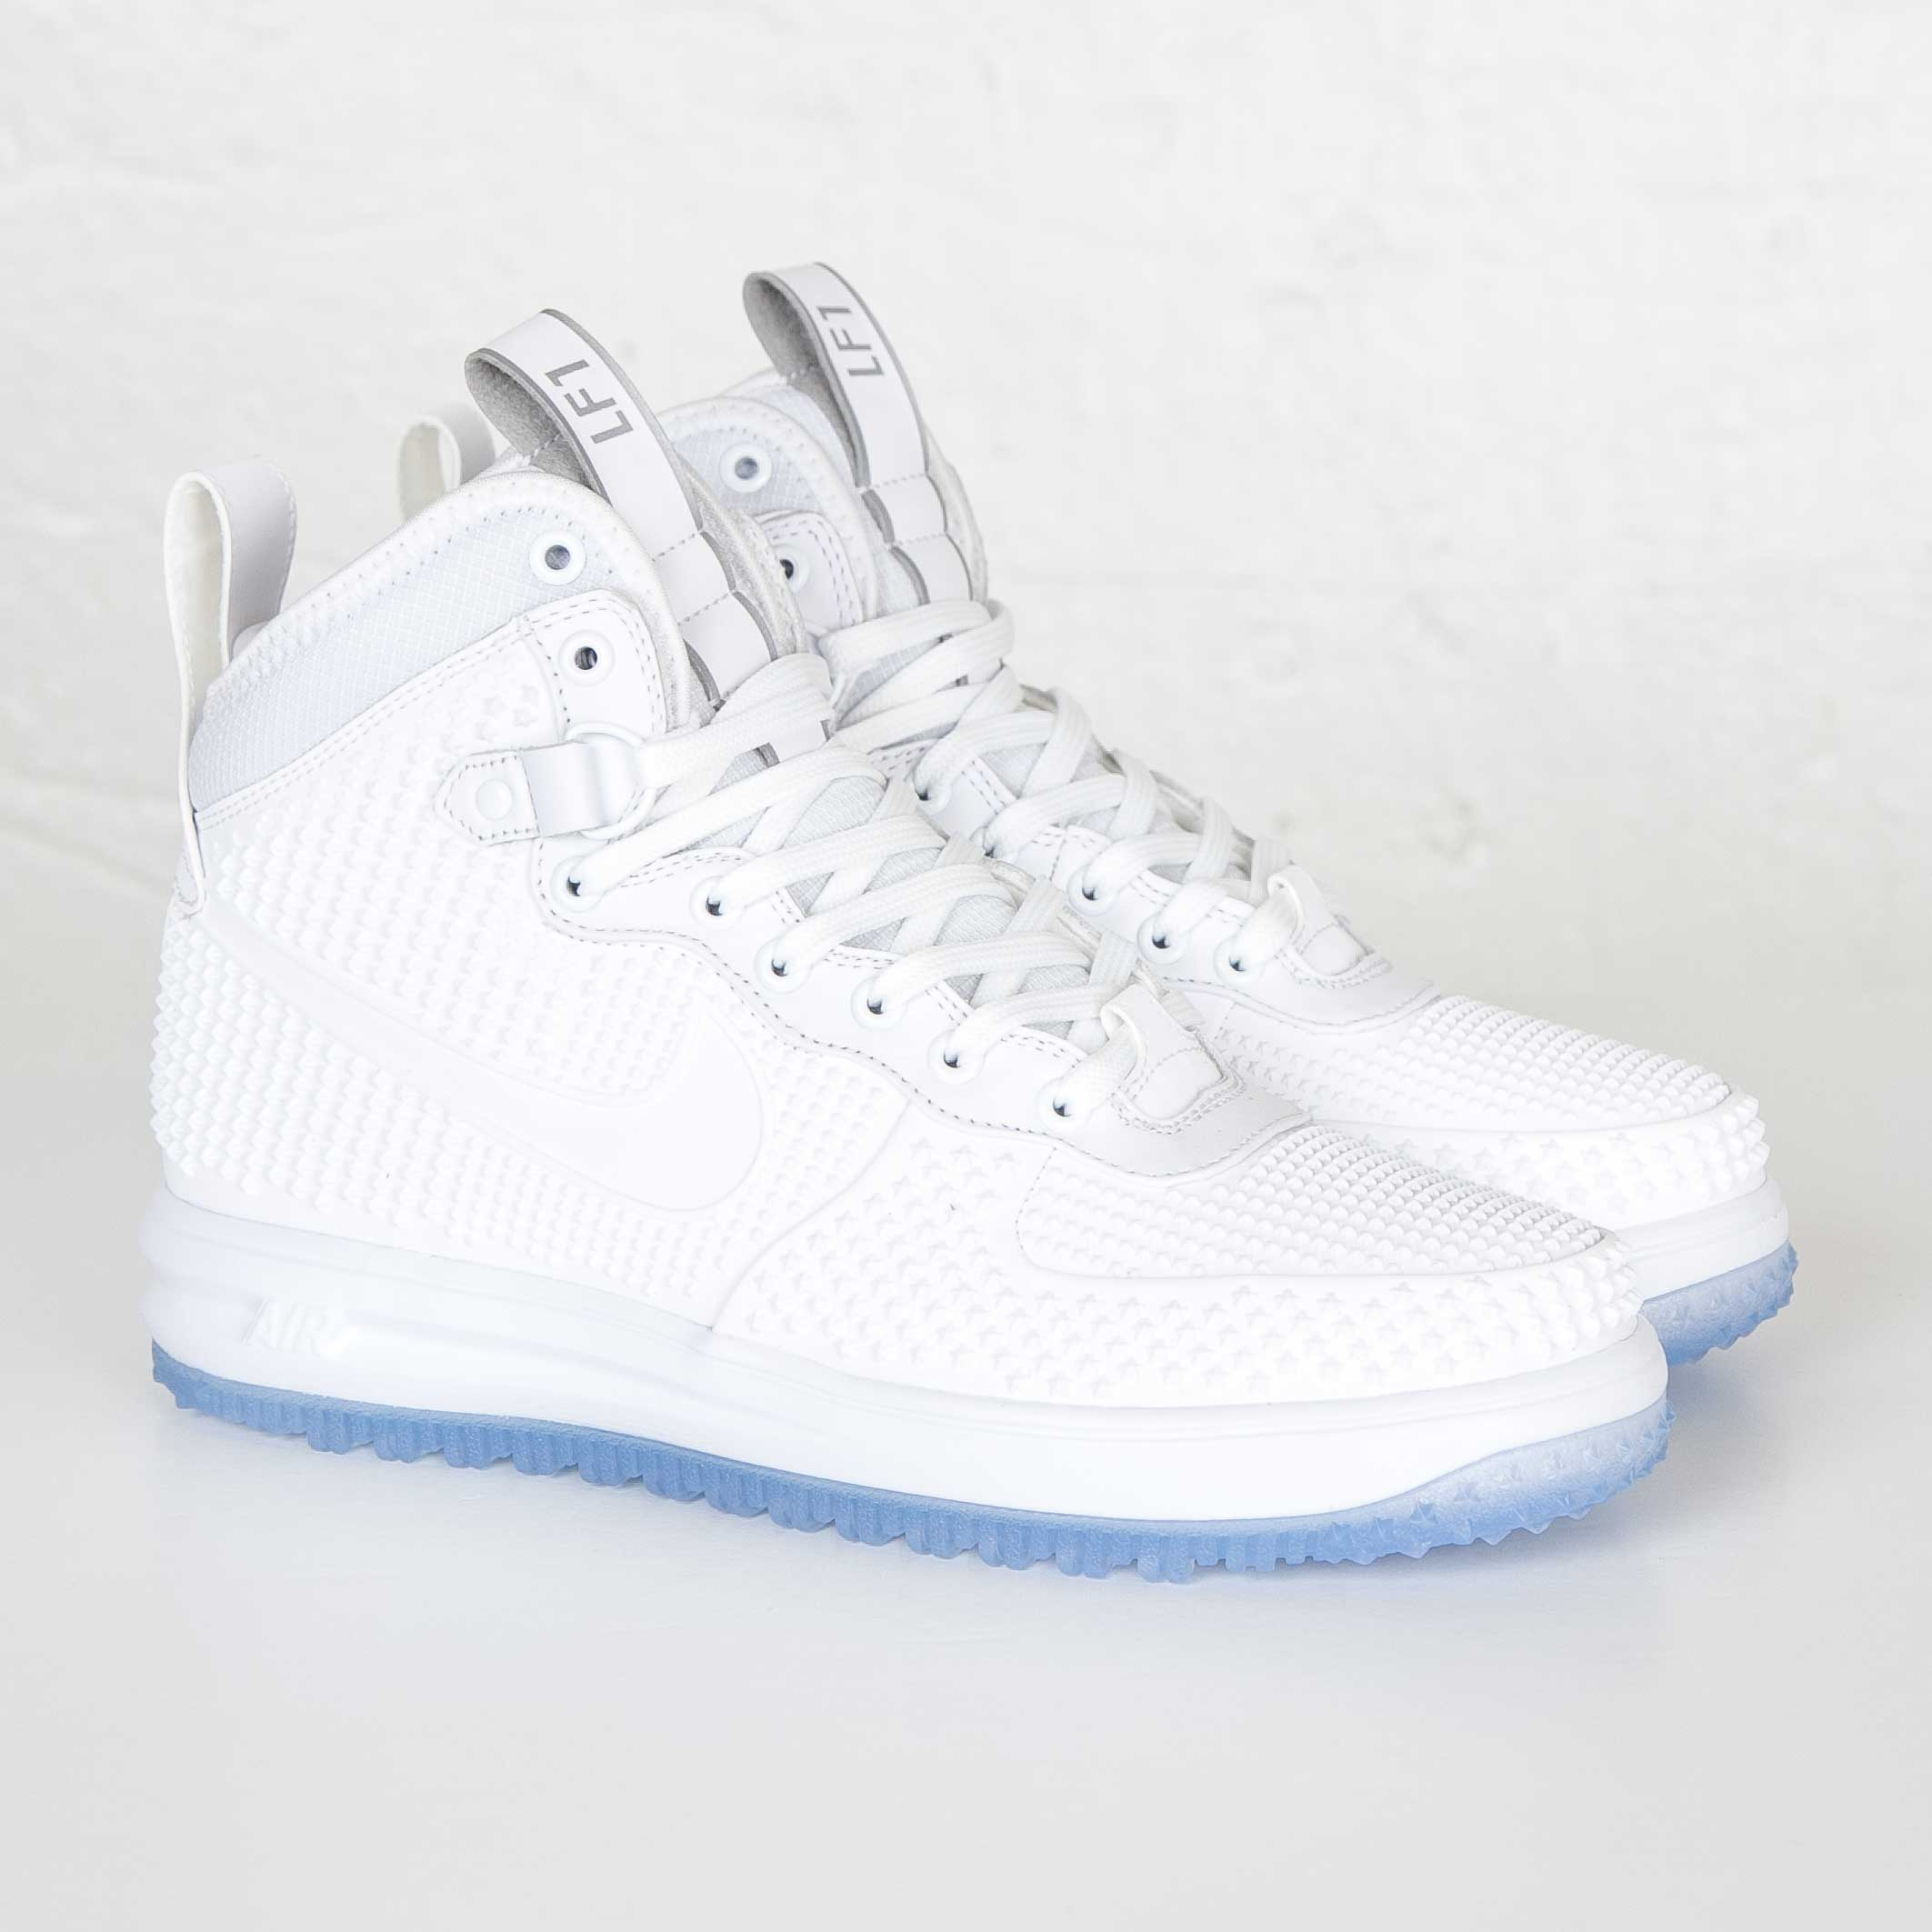 big sale 6859d 896ec Nike Lunar Force 1 Duckboot Premium